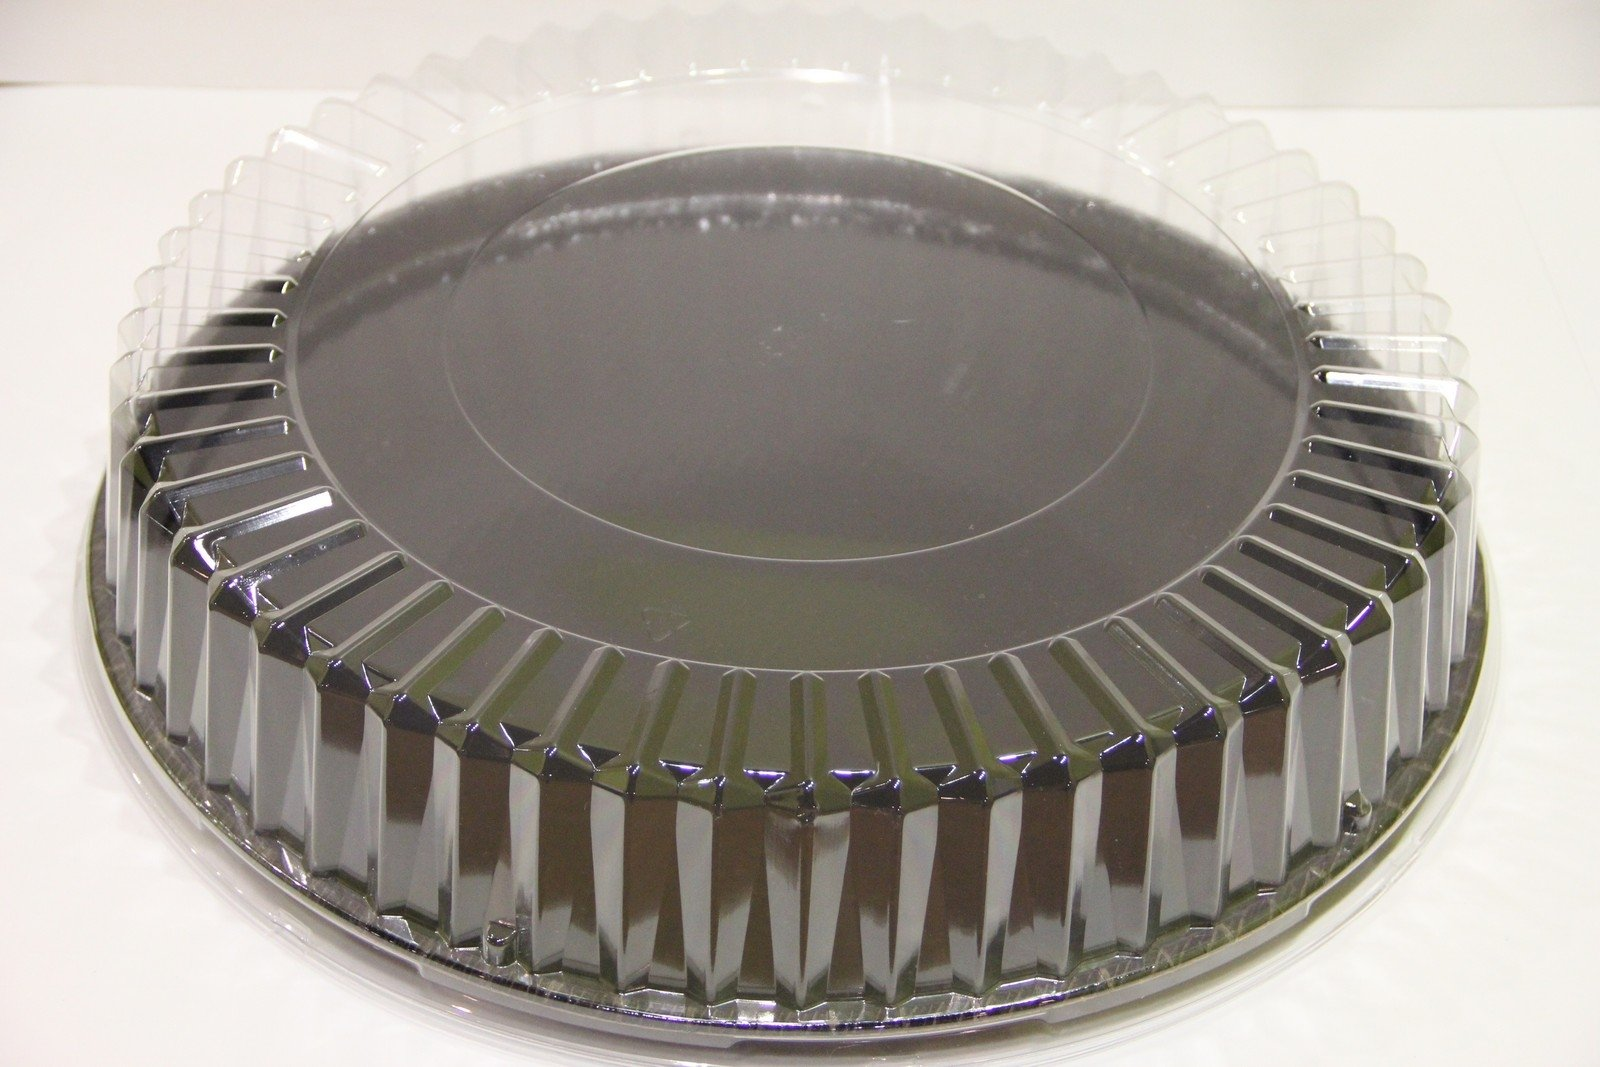 Solut 05016 OPS Dome Lid, 18'' Diameter x 3-1/2'' Height, Clear, for All 18'' Catering Trays (Case of 25)